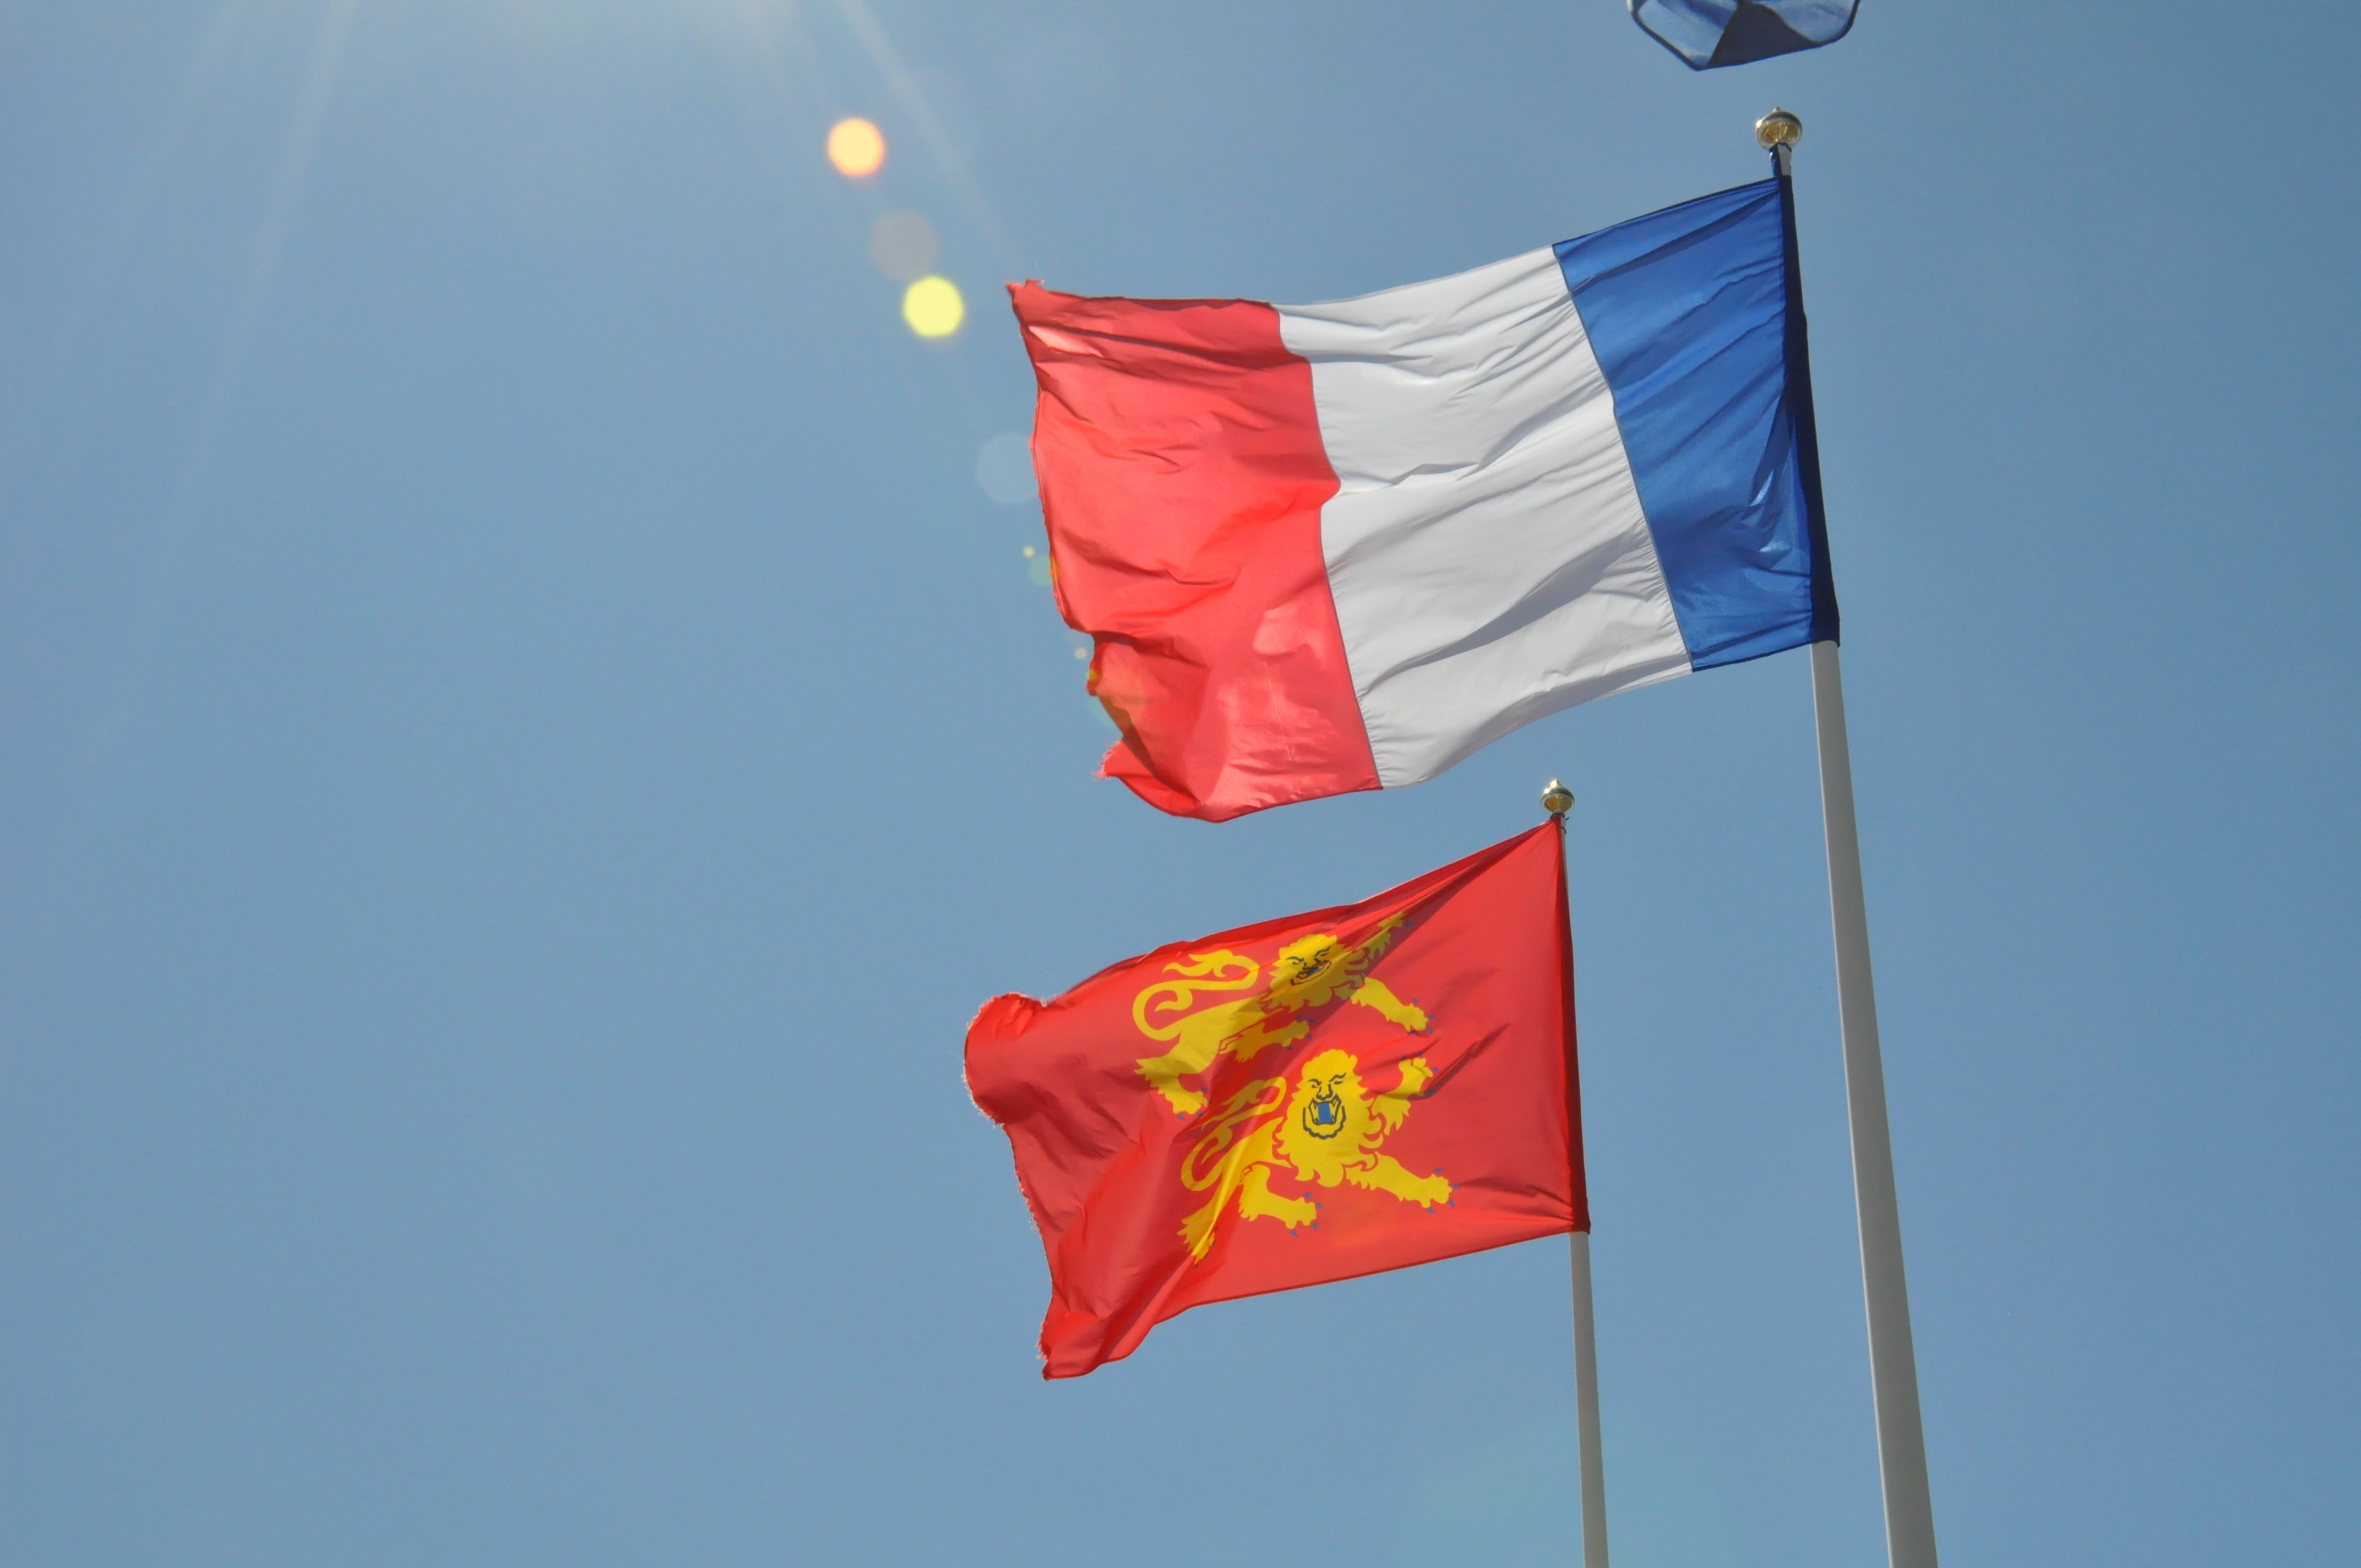 Flags of Fracce and Normandy